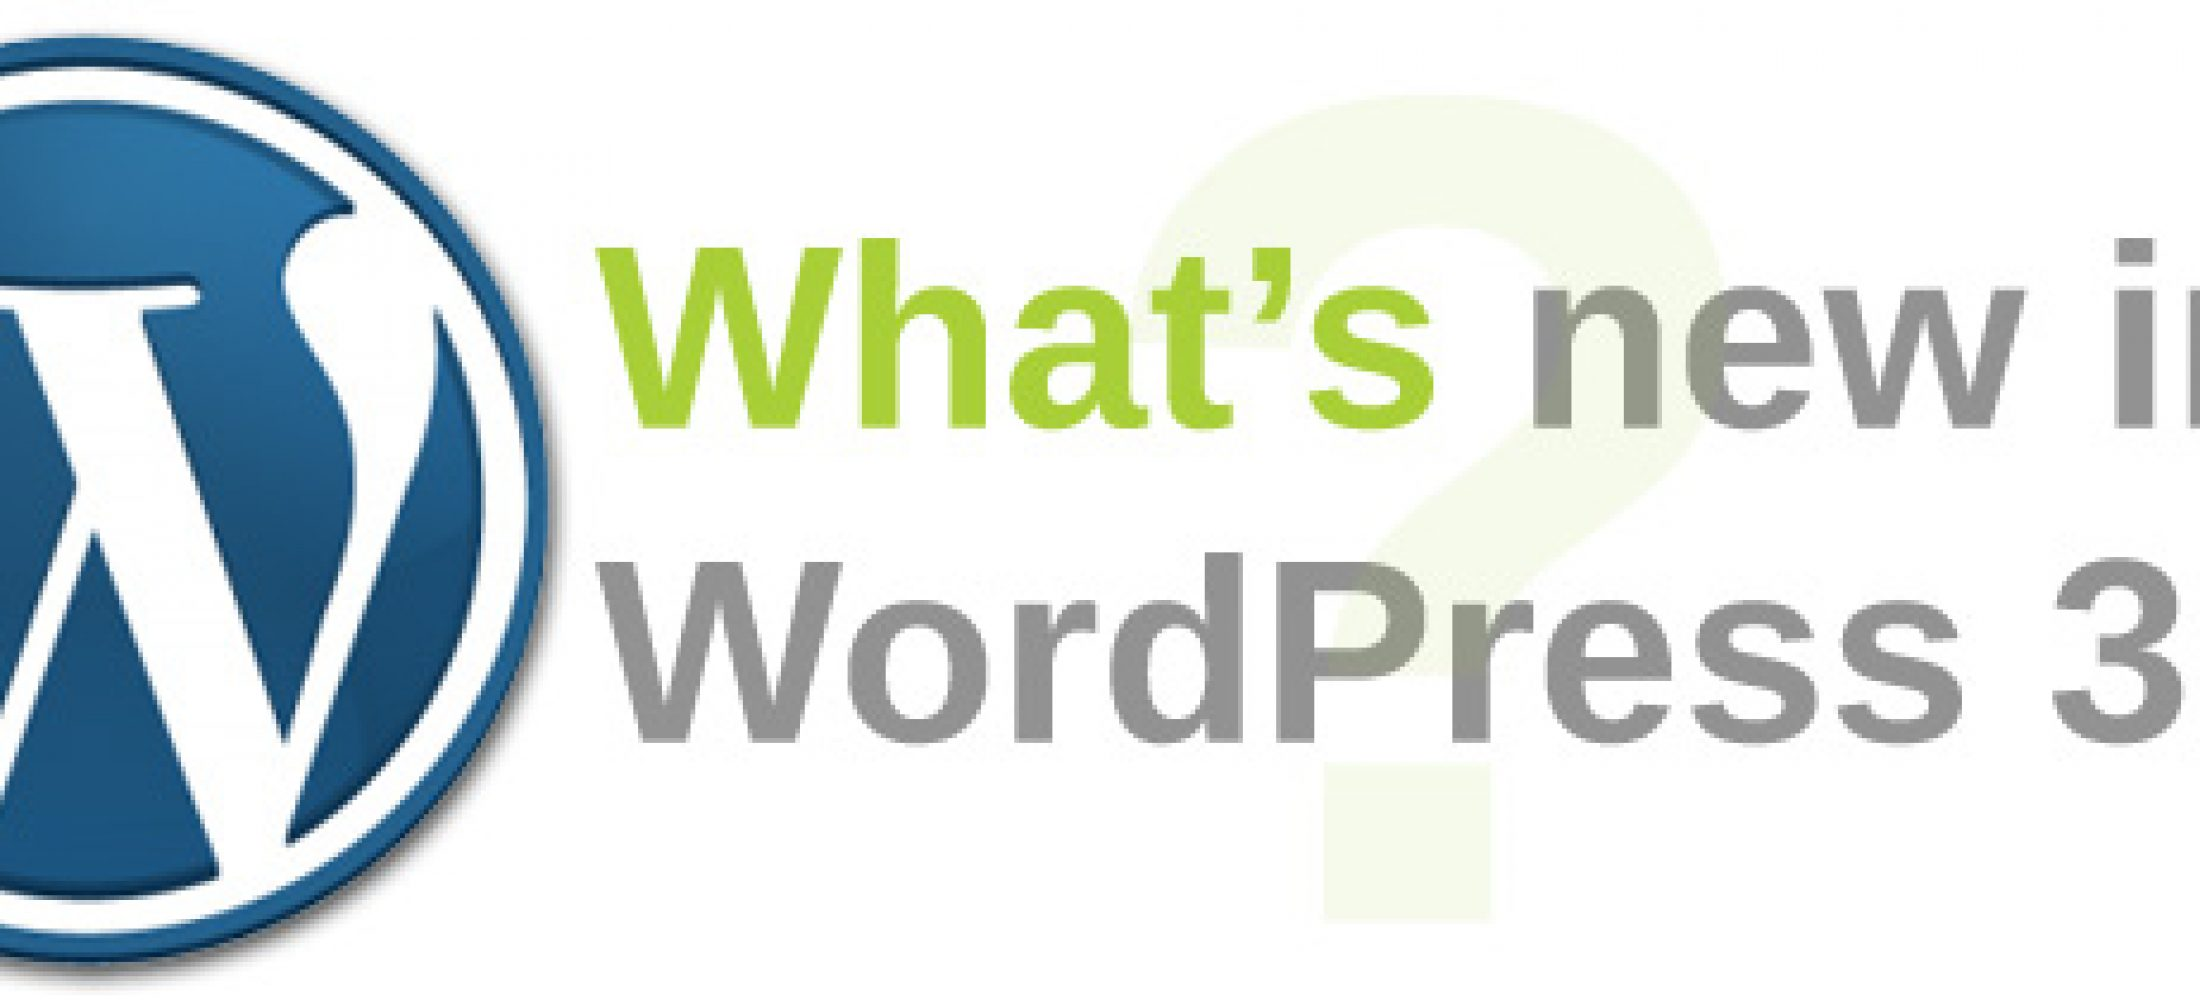 WordPress 3.5 released – don't upgrade yet